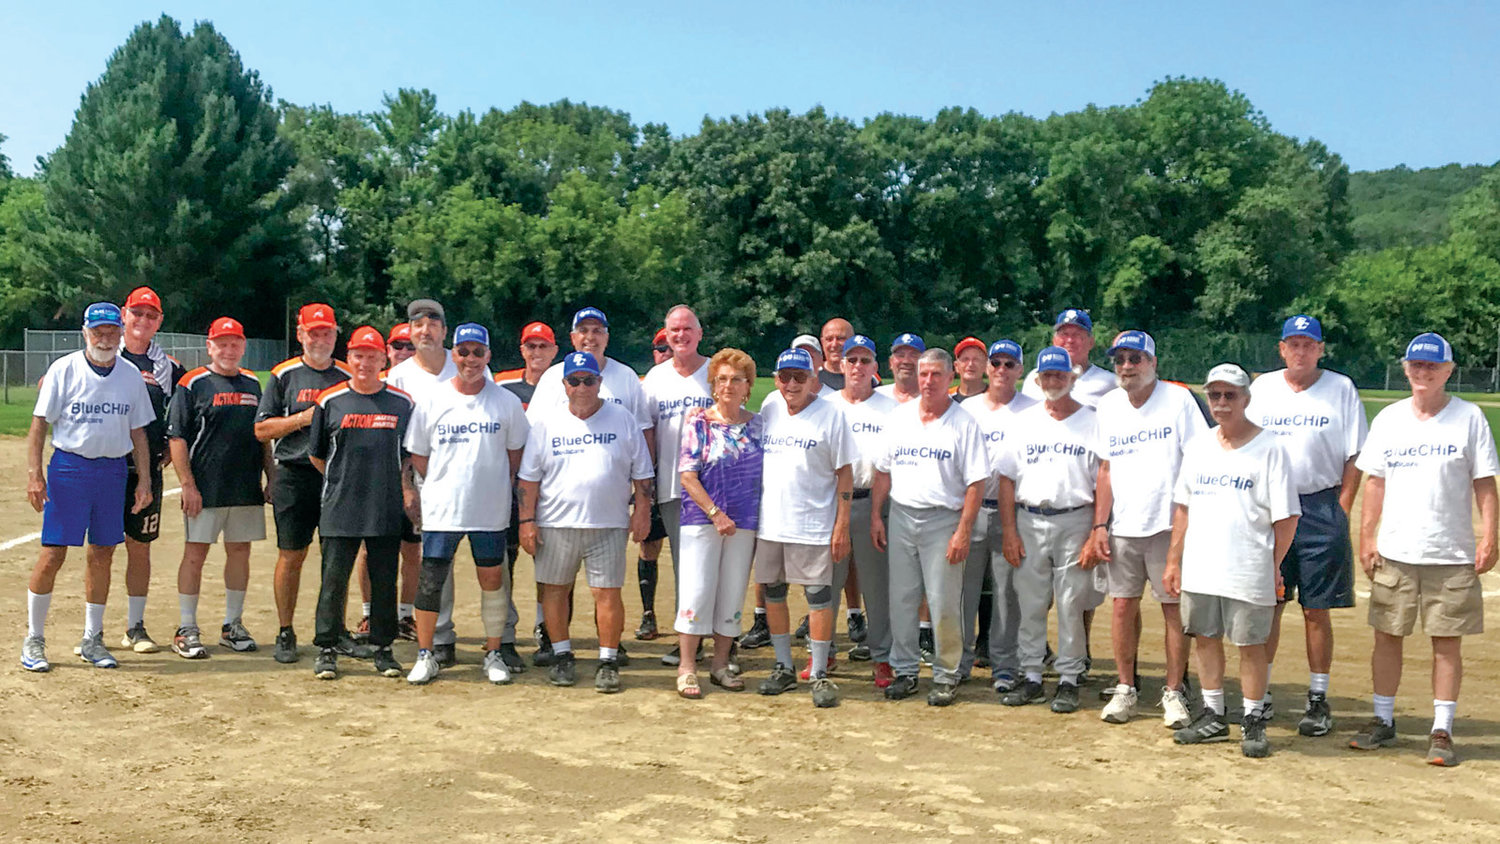 SECOND FAMILY: Members of the RI Senior Softball League, including the Blue Cross team, during a game this season.